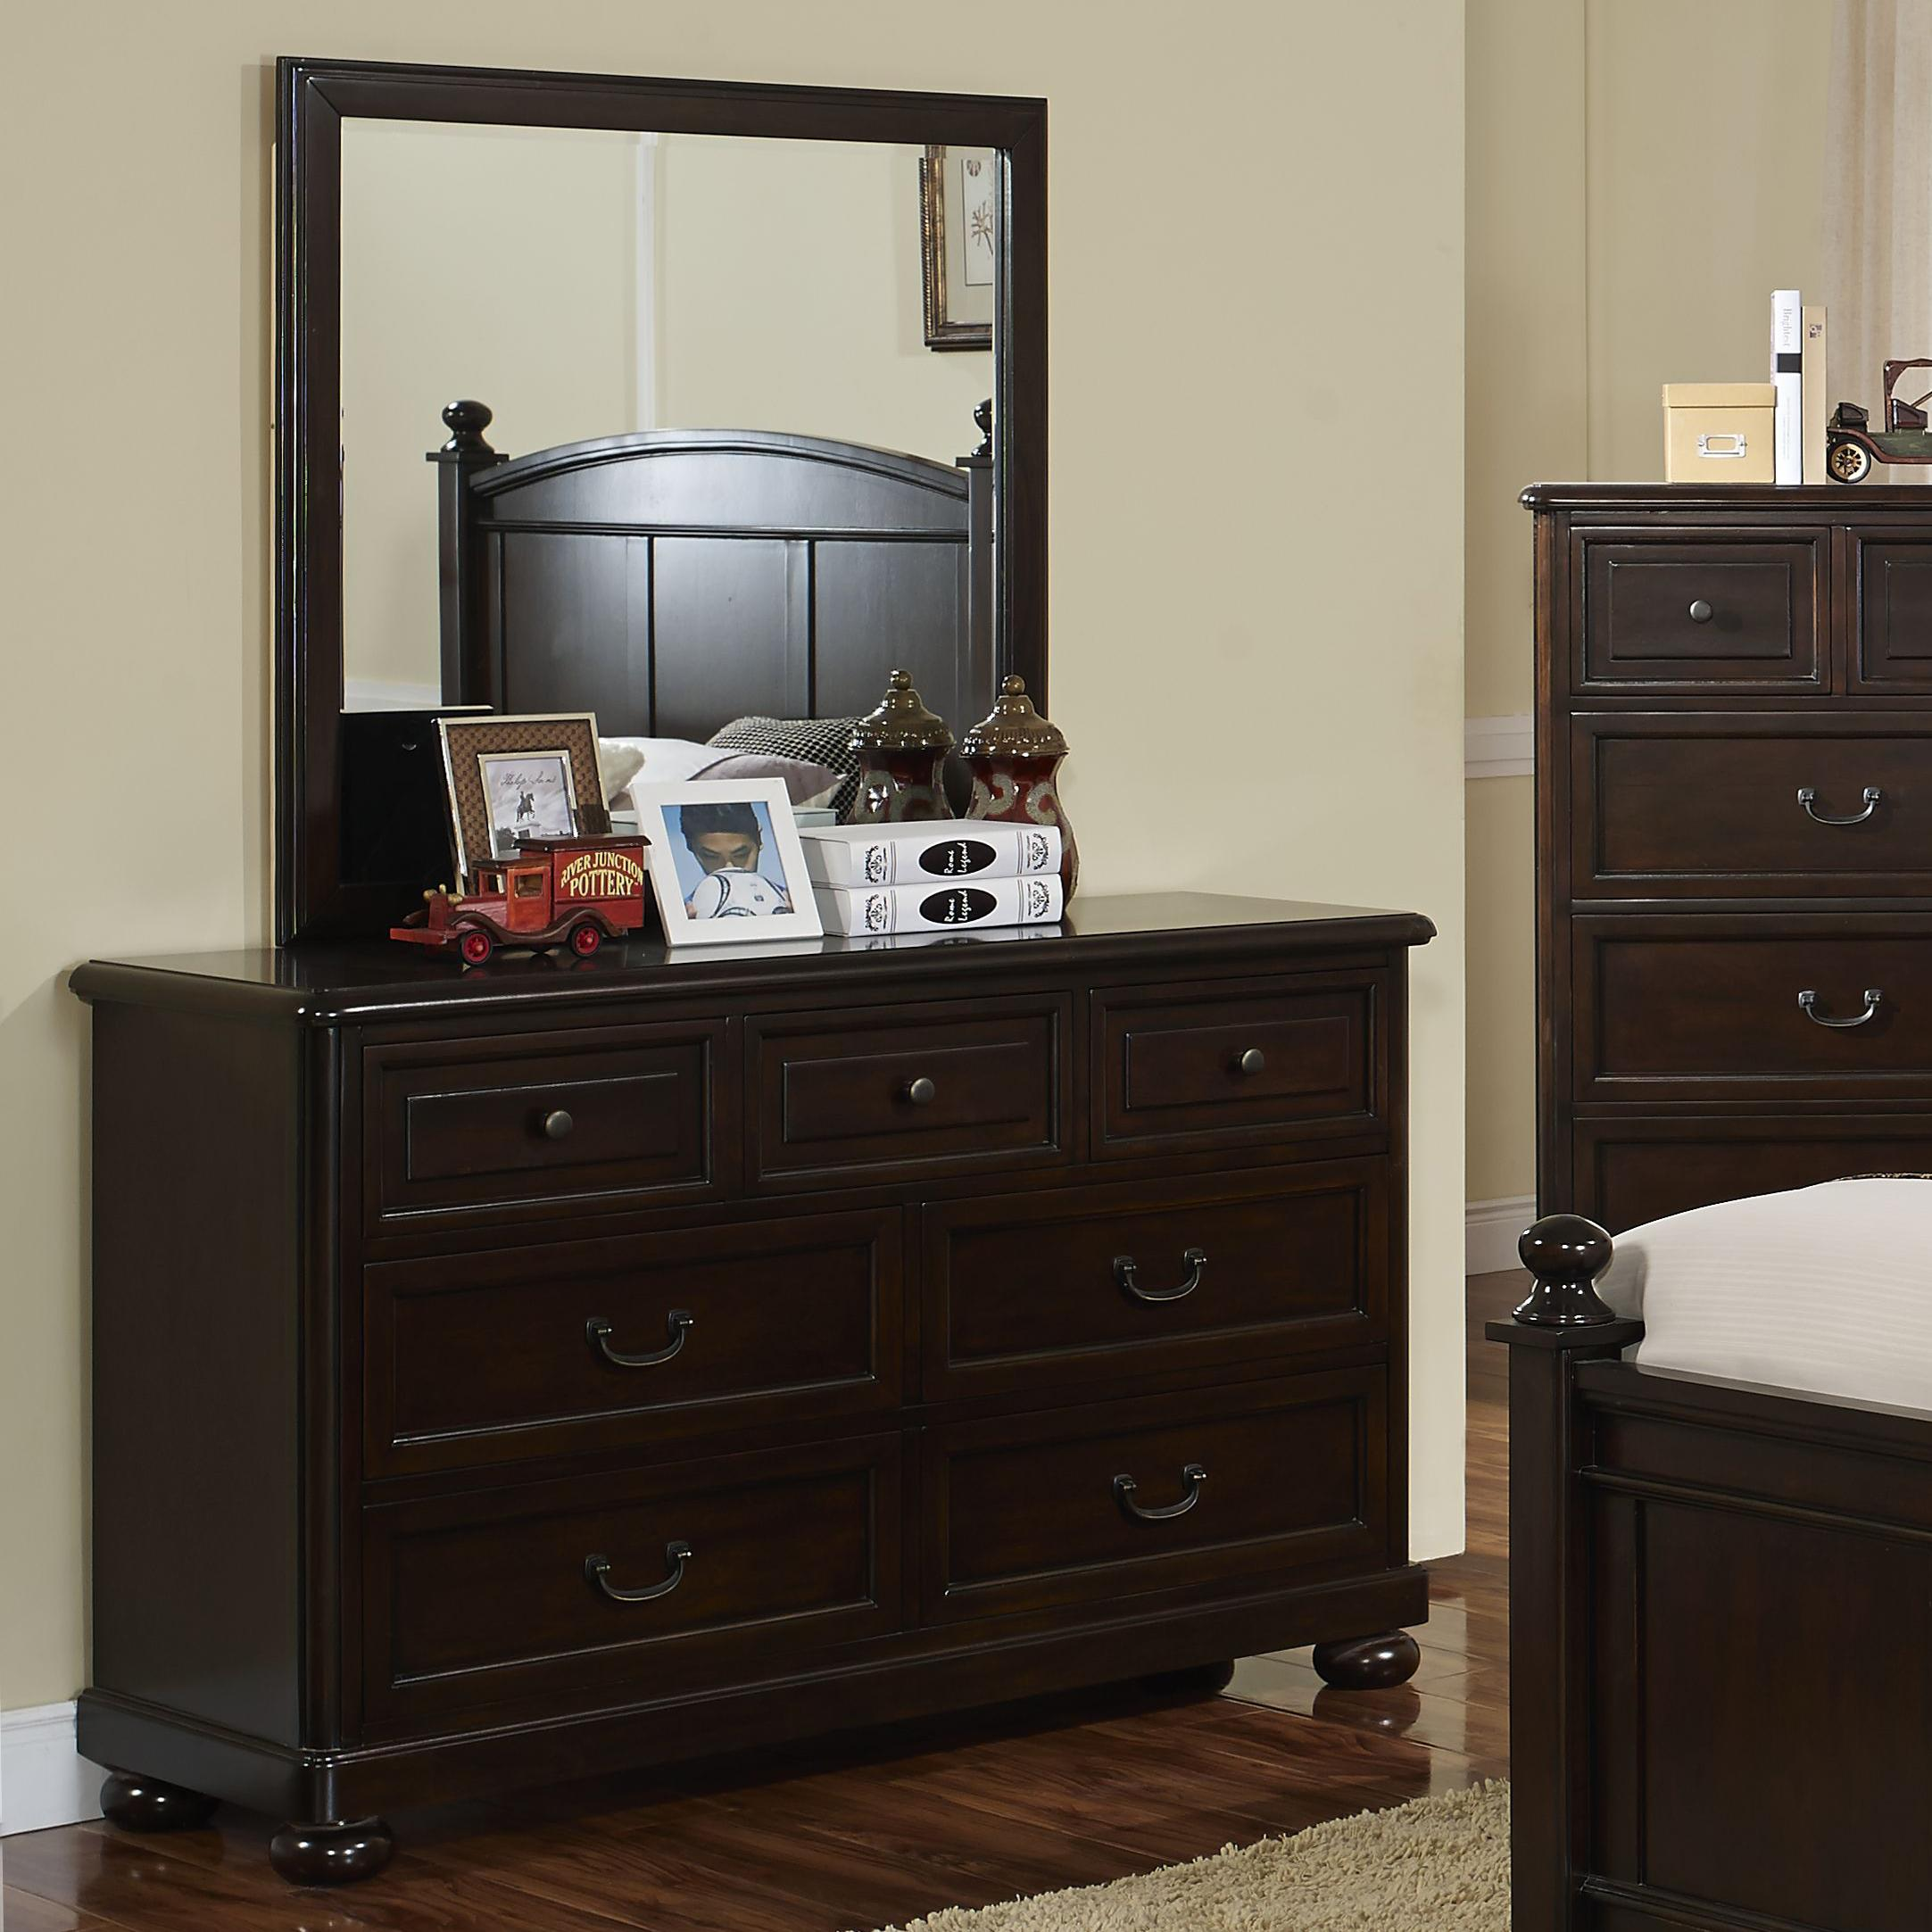 New Classic Canyon Ridge Dresser and Mirror - Item Number: 05-230-052+062